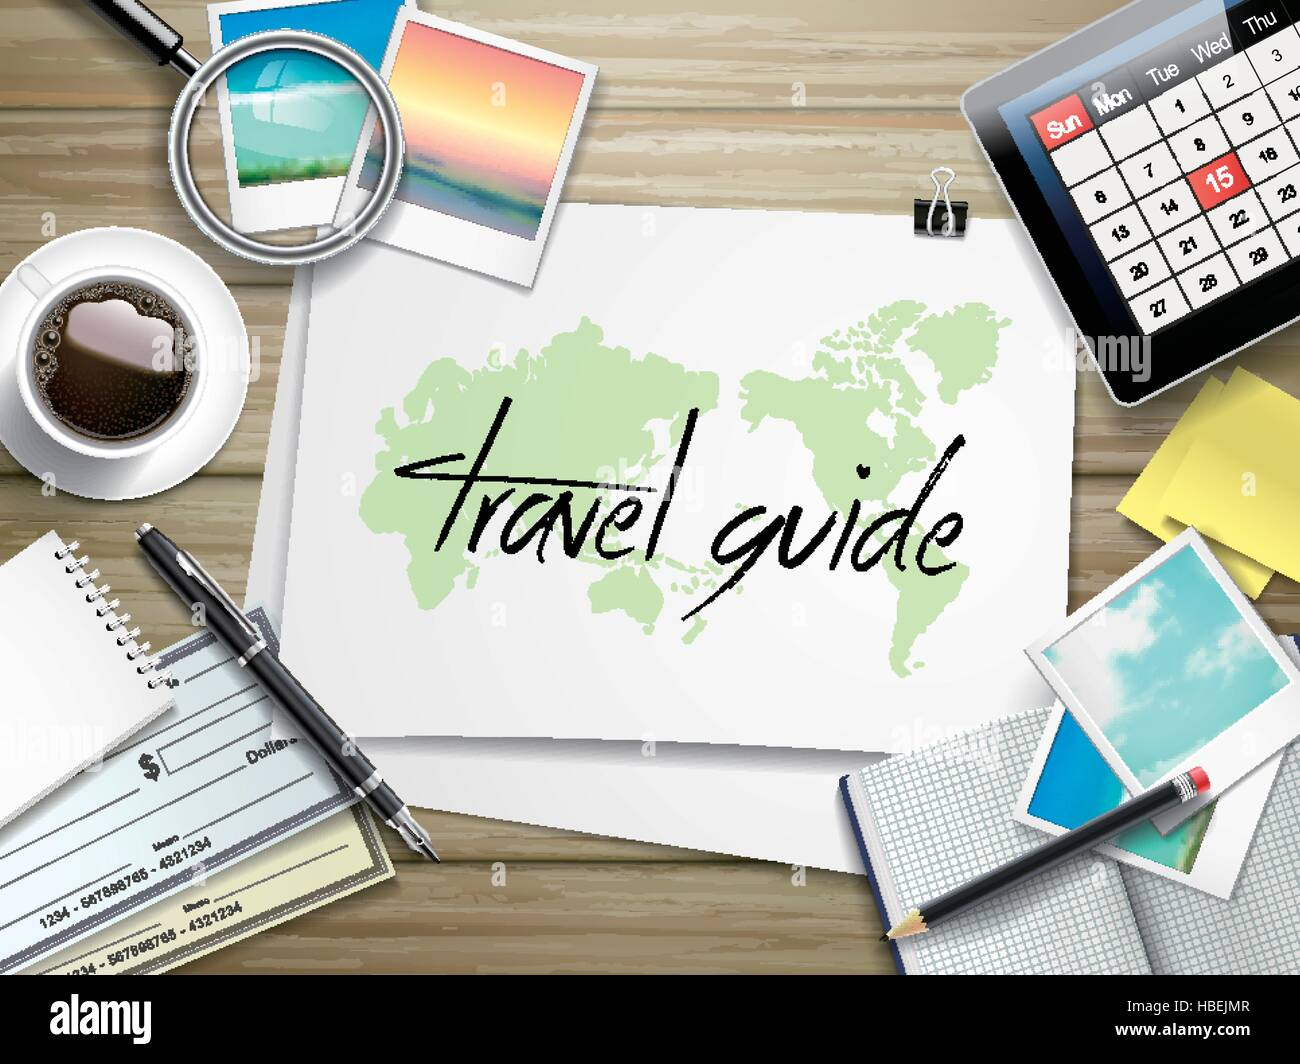 top view of travel items on wooden table with travel guide written on paper - Stock Vector